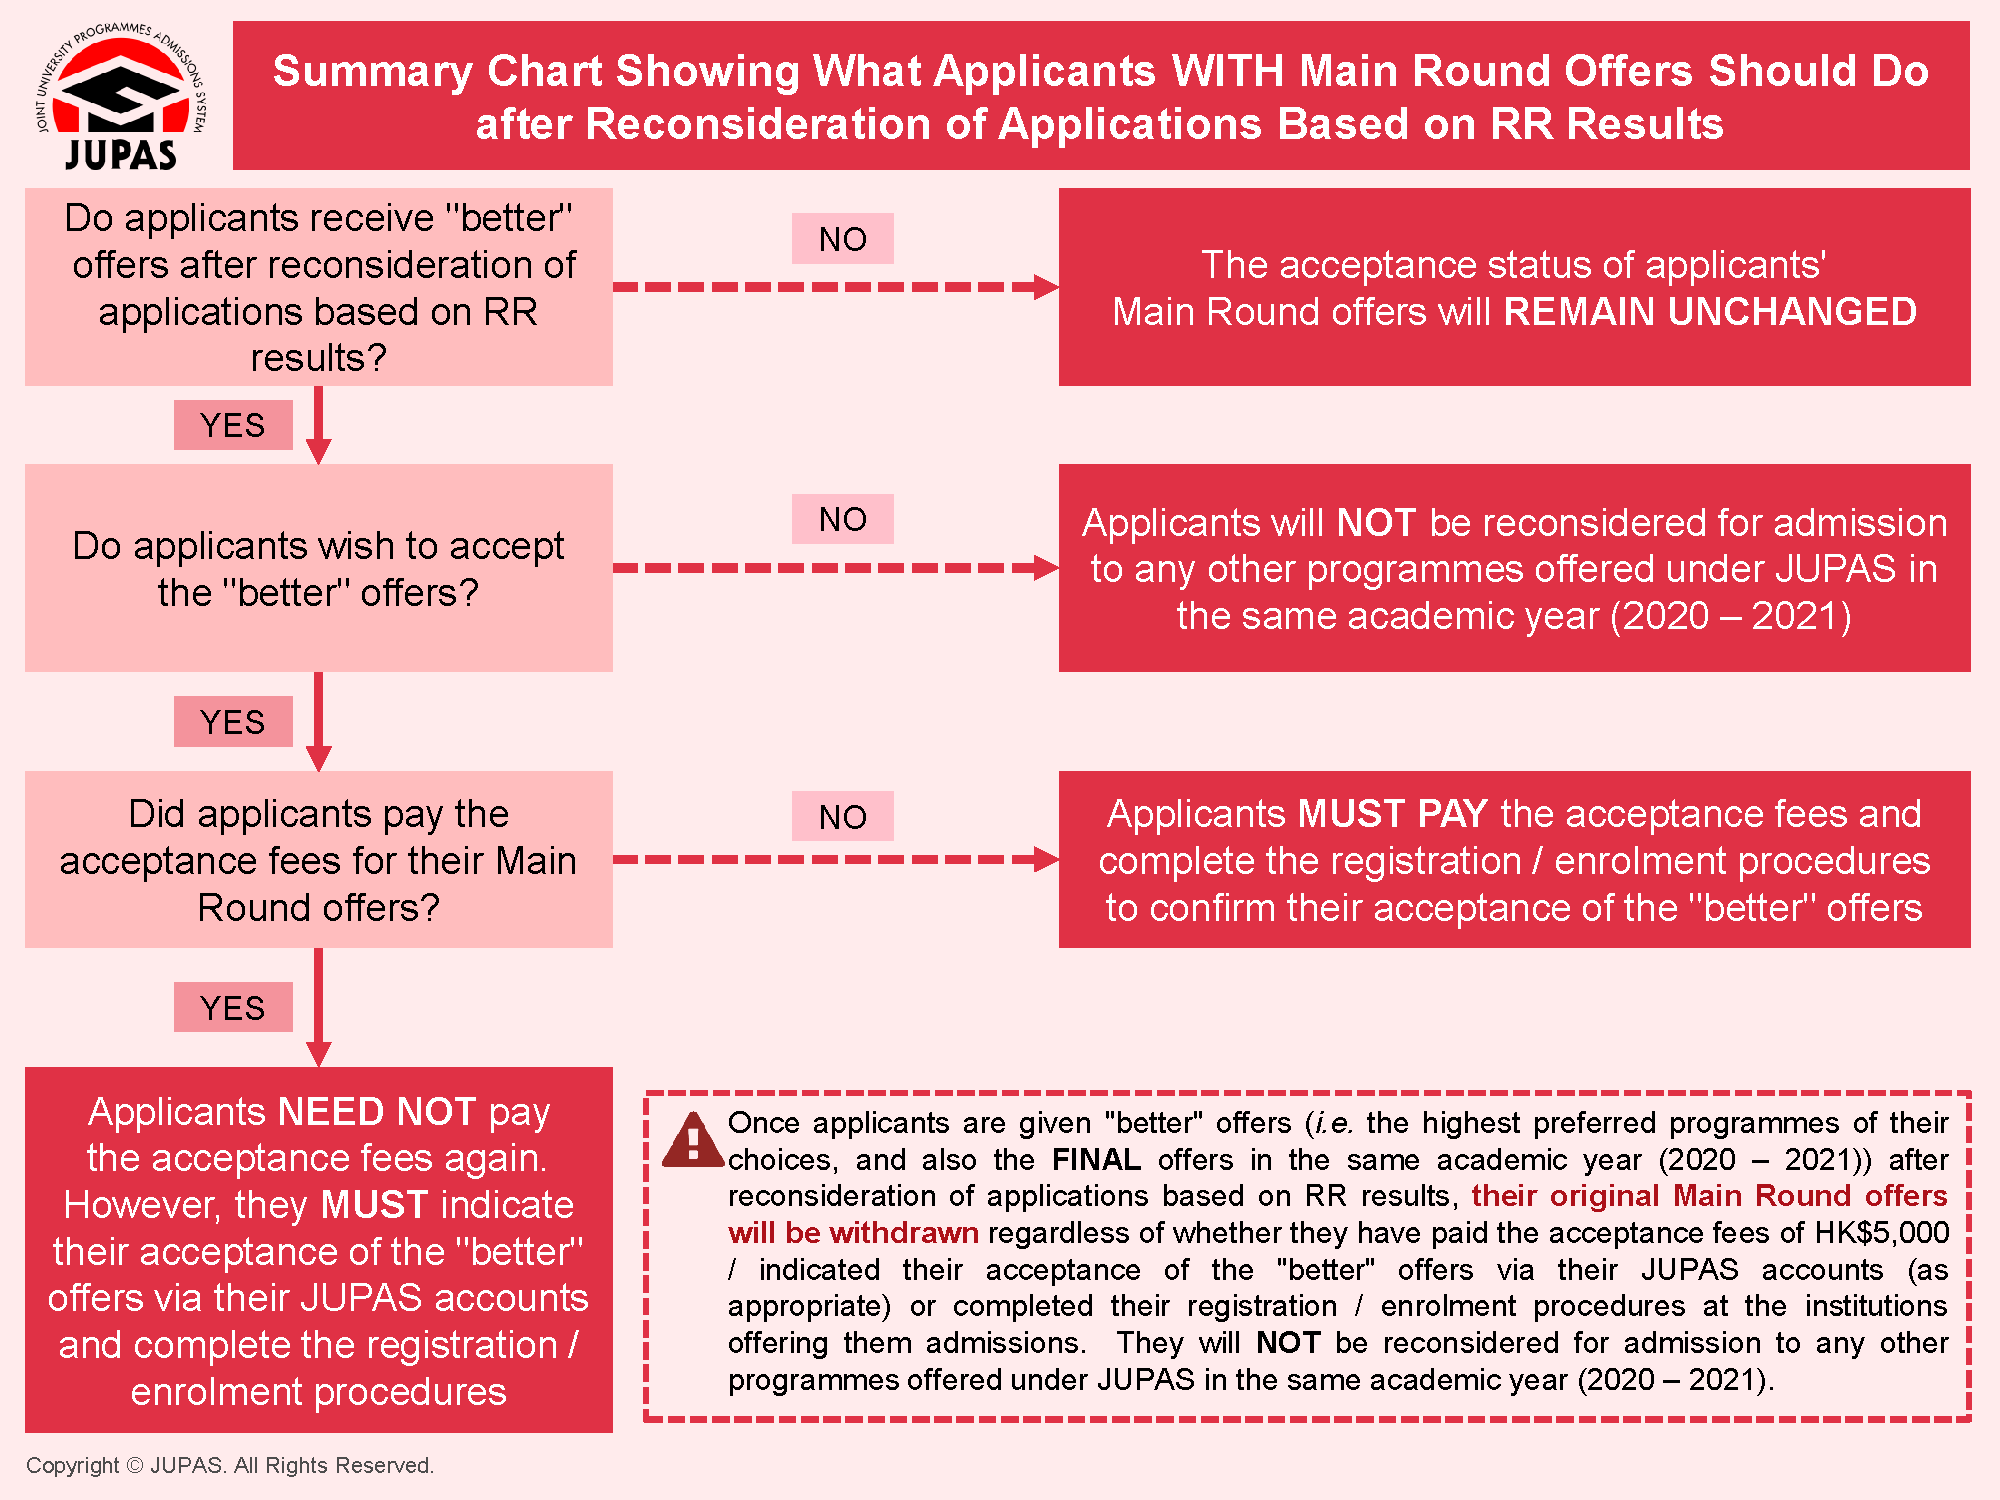 Summary Chart Showing What Applicants WITH Main Round Offers Should Do after Reconsideration of Application Based on RR Results